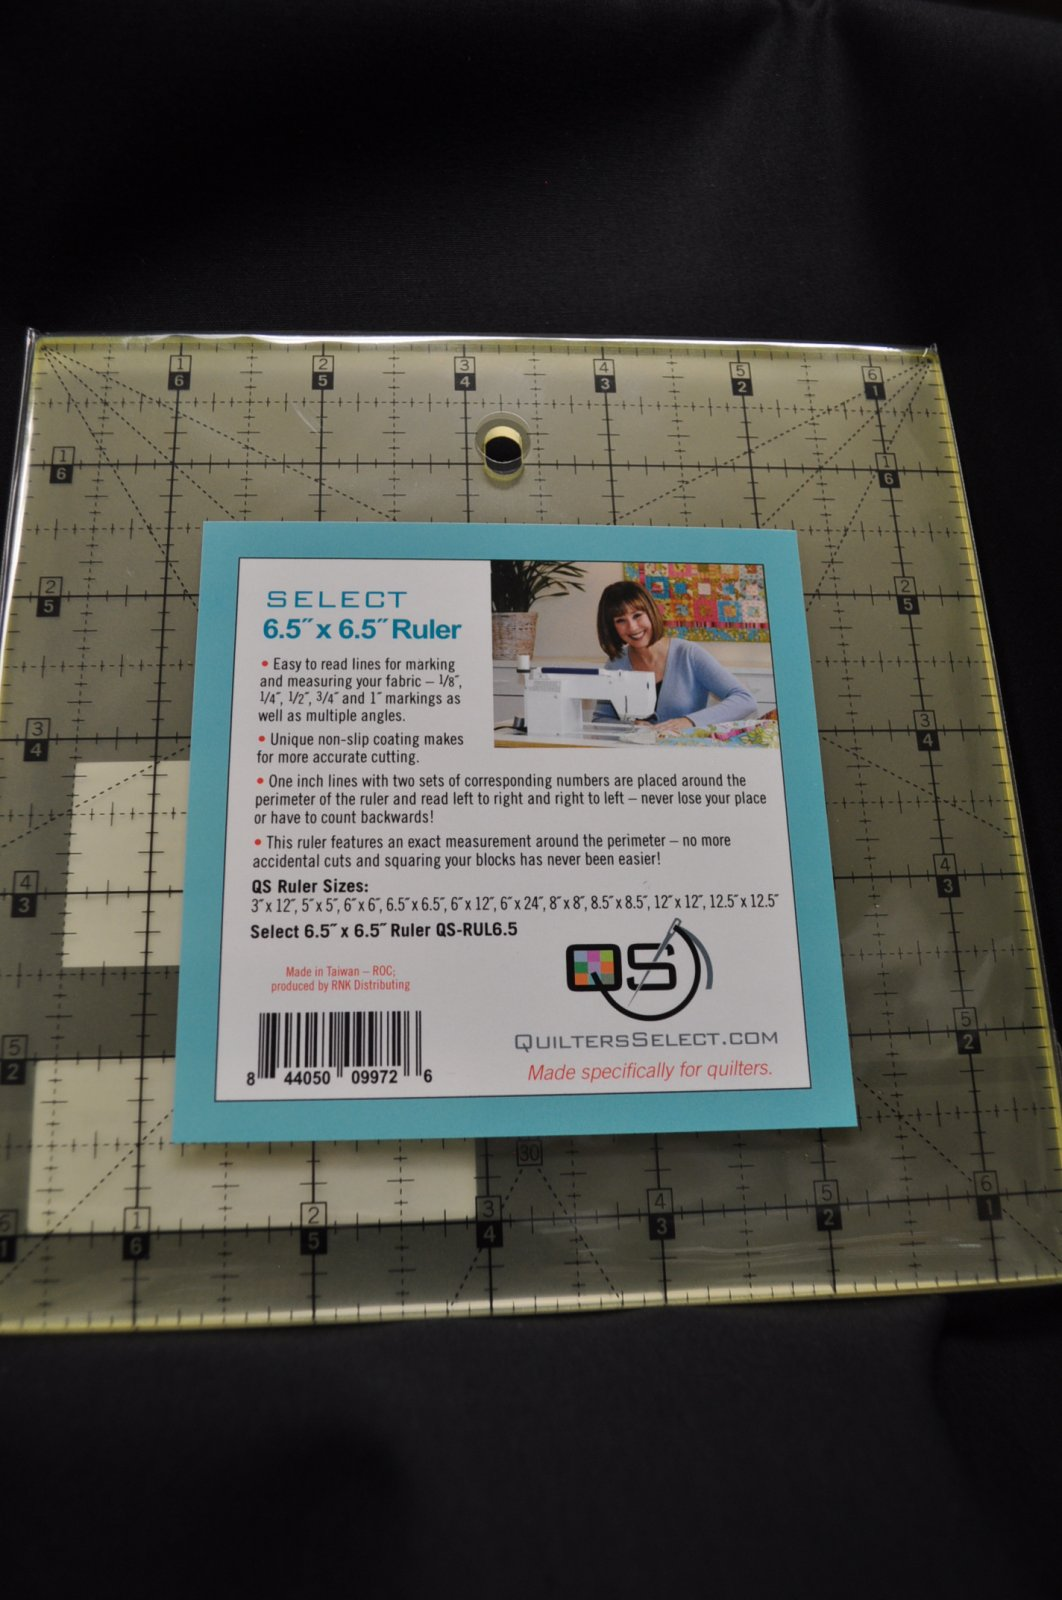 Quilters Select Quilting Ruler 6.5 x 6.5